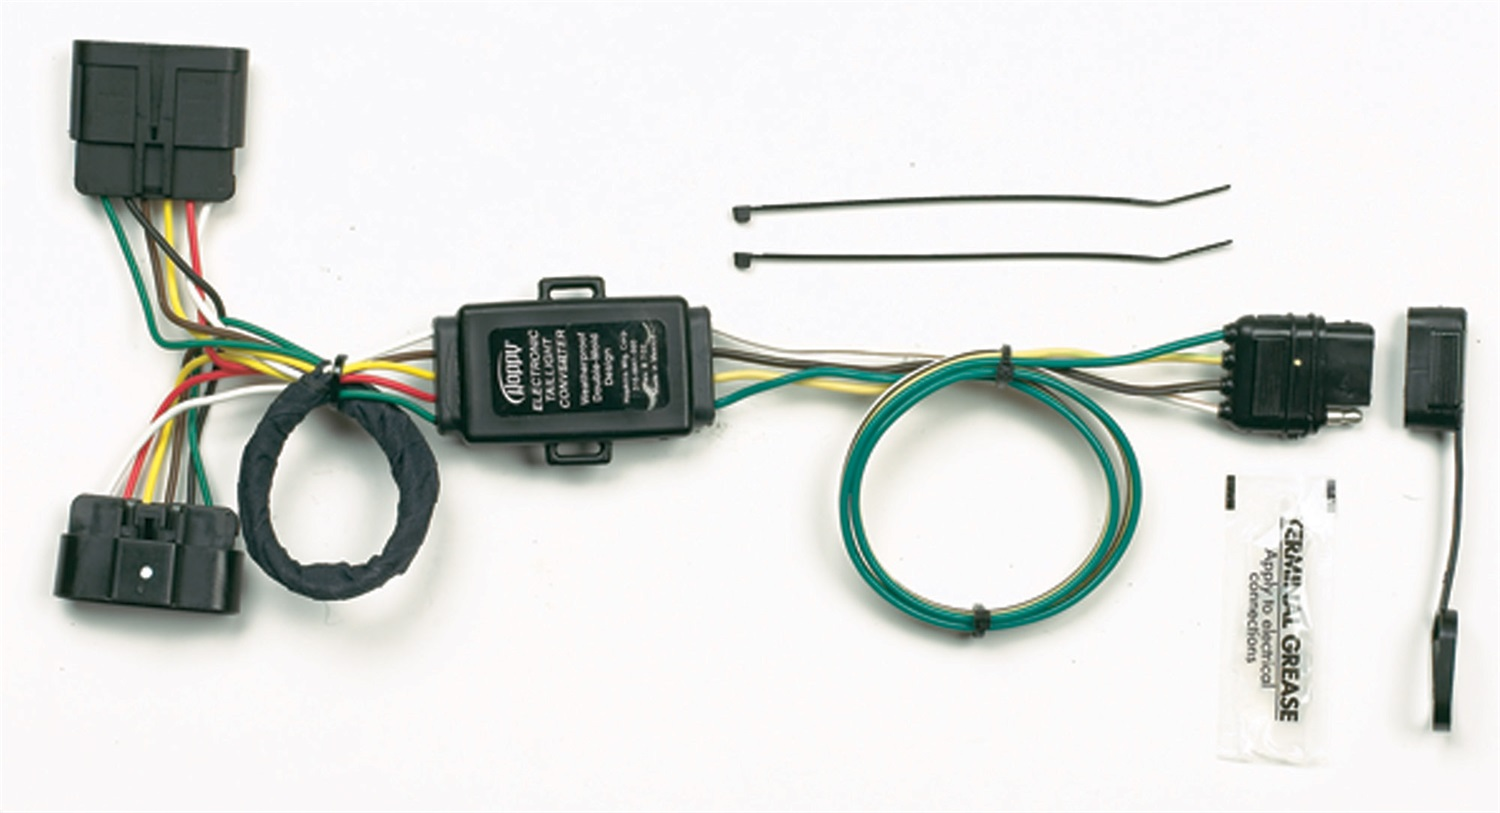 Trailer Wiring Harness For Chevy Colorado : Hopkins towing solution trailer wire connector gmc canyon